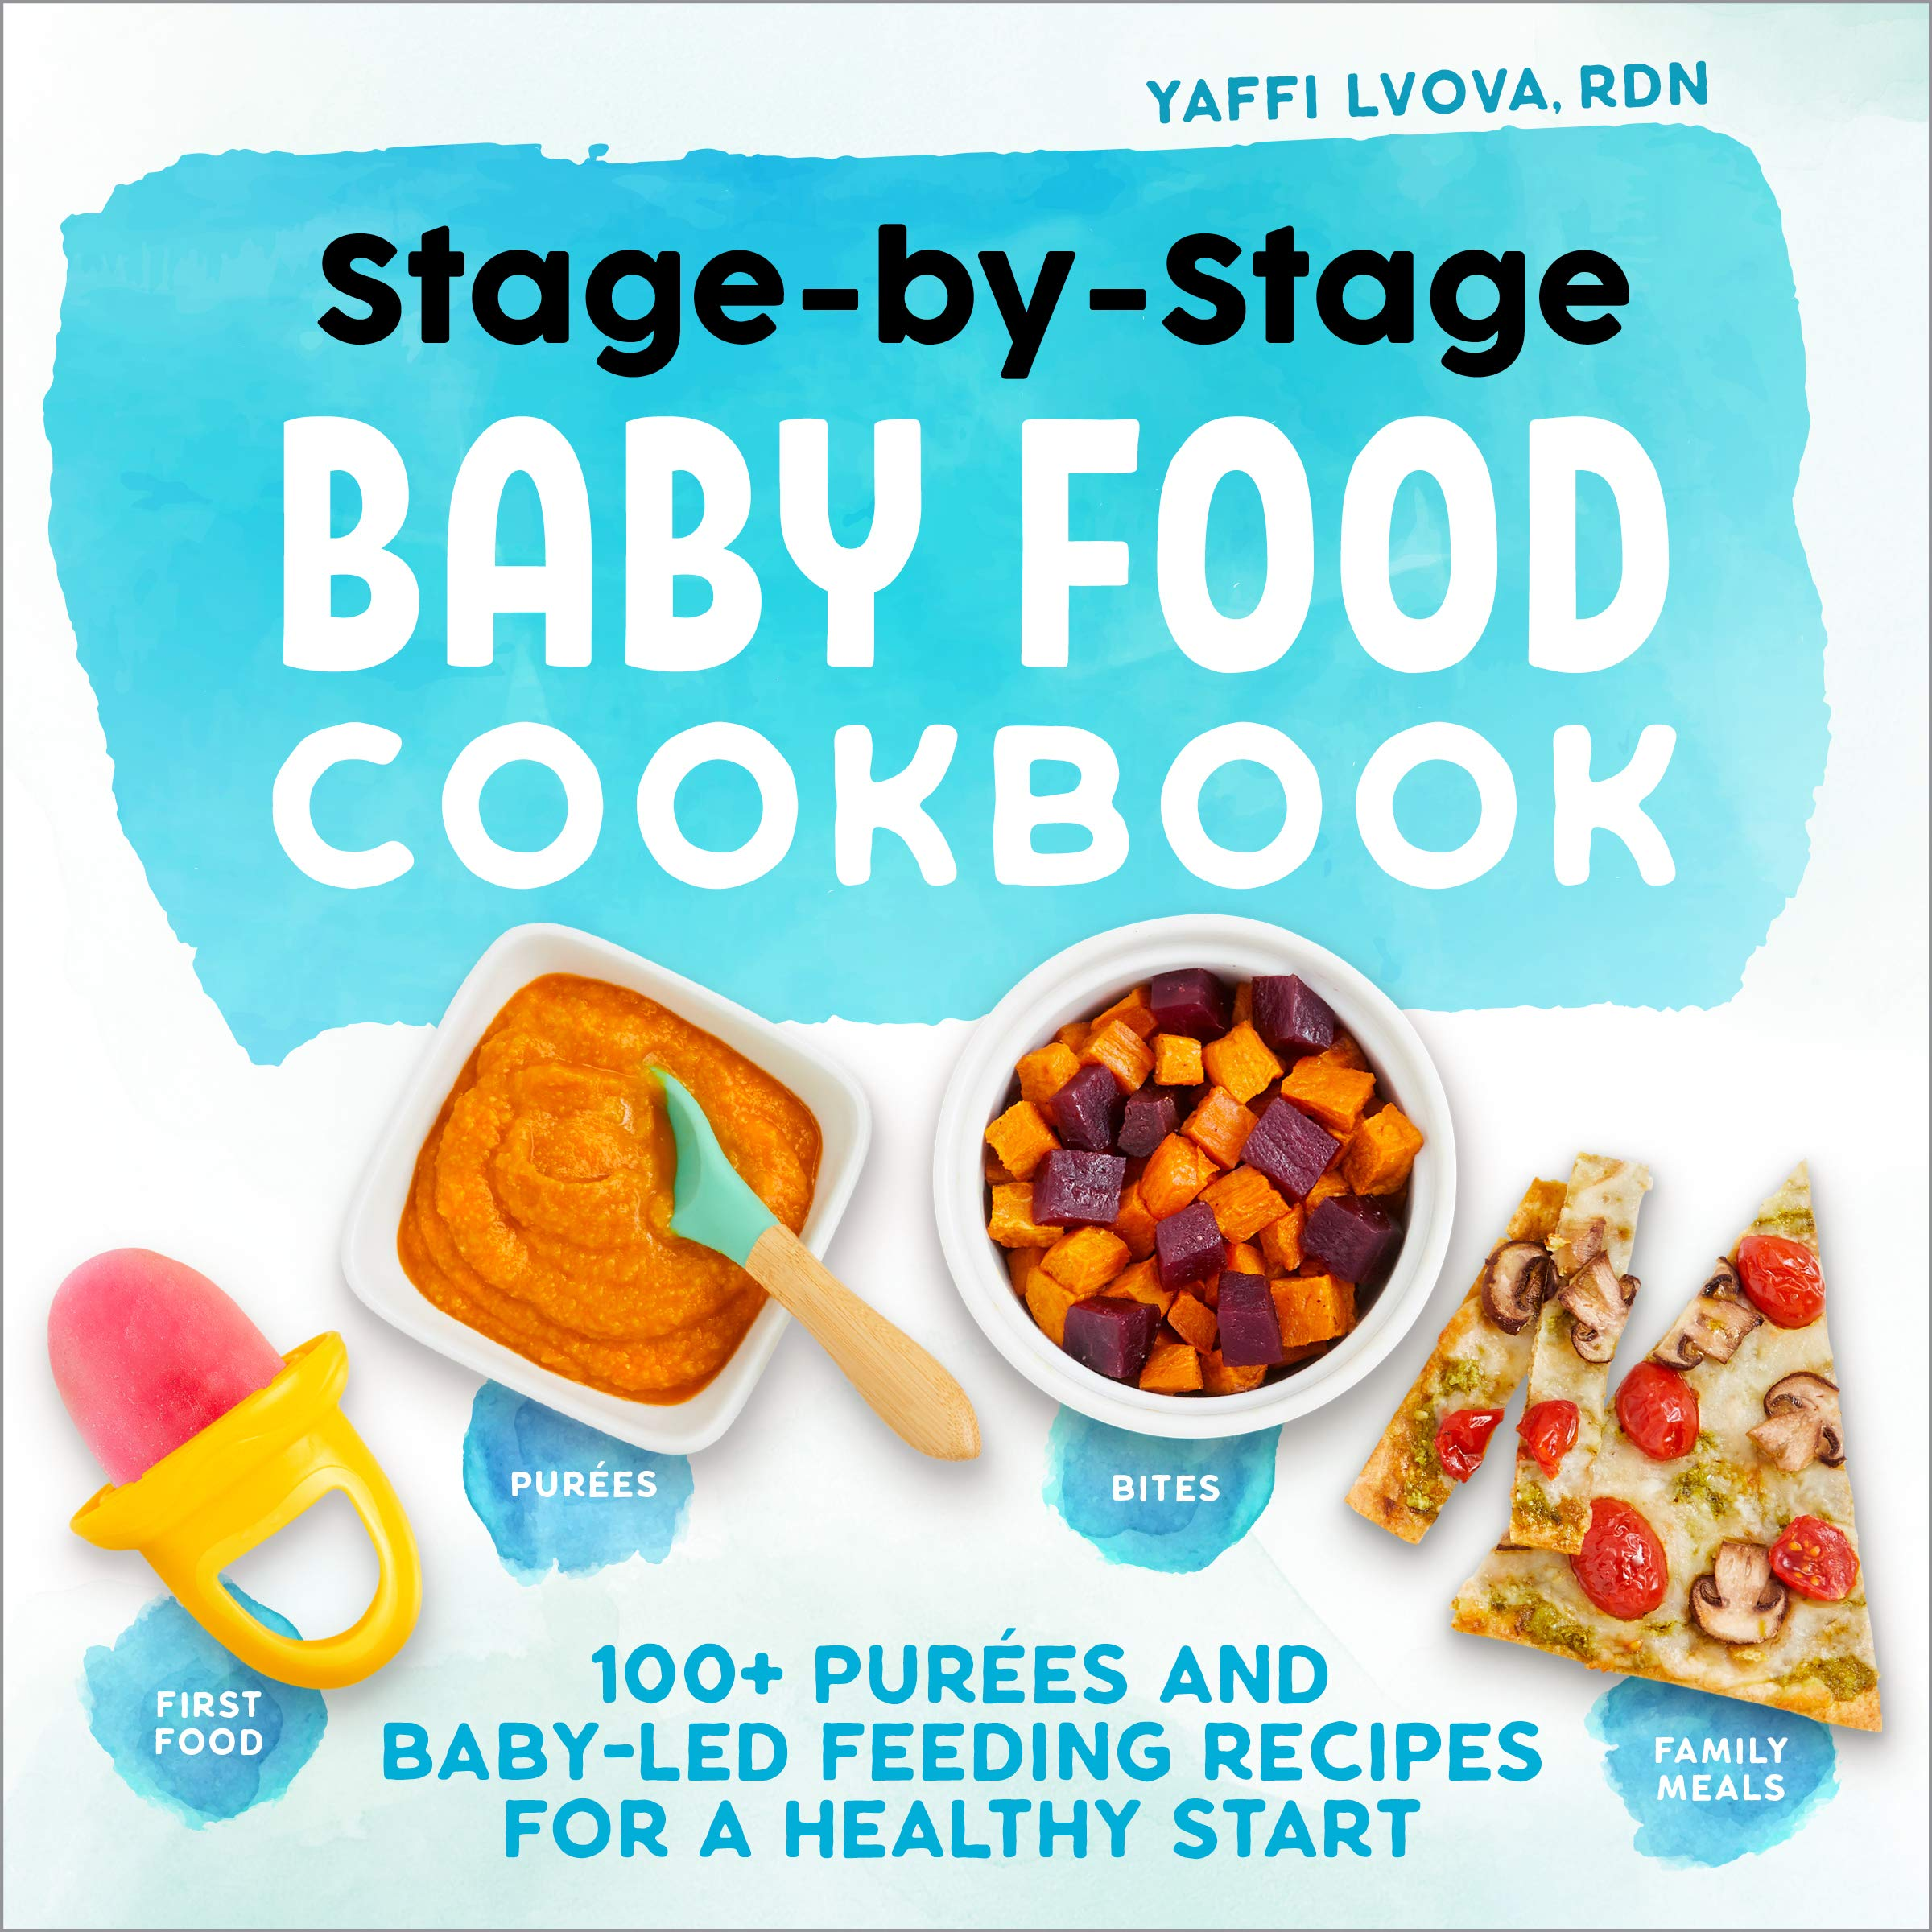 Amazon Com Stage By Stage Baby Food Cookbook 100 Purees And Baby Led Feeding Recipes For A Healthy Start 9781641529716 Lvova Rdn Yaffi Books